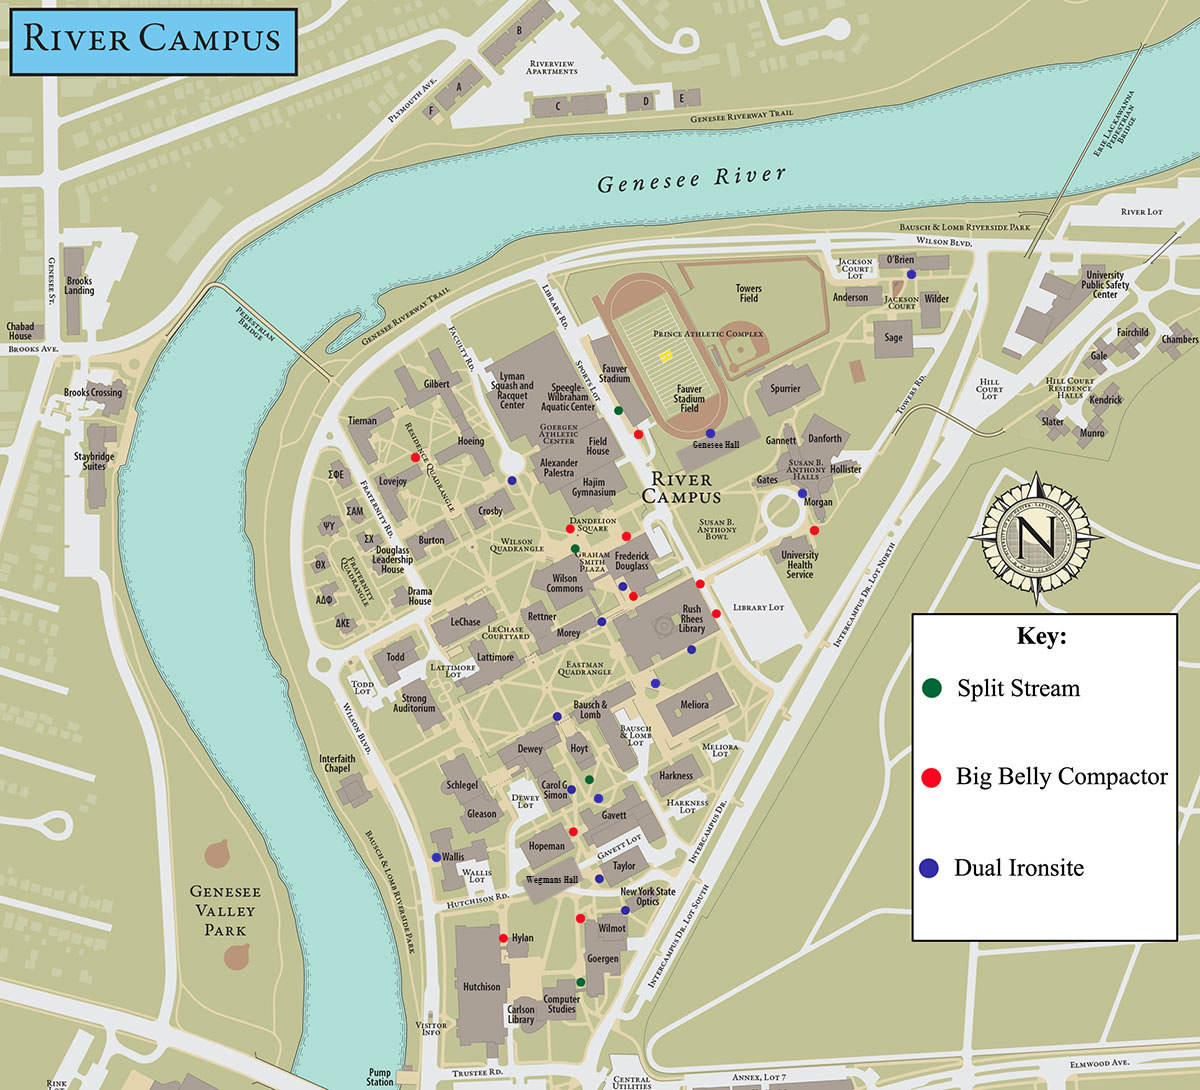 university of rochester campus map pdf Outdoor Recylcing Containers Sustainability University Of university of rochester campus map pdf